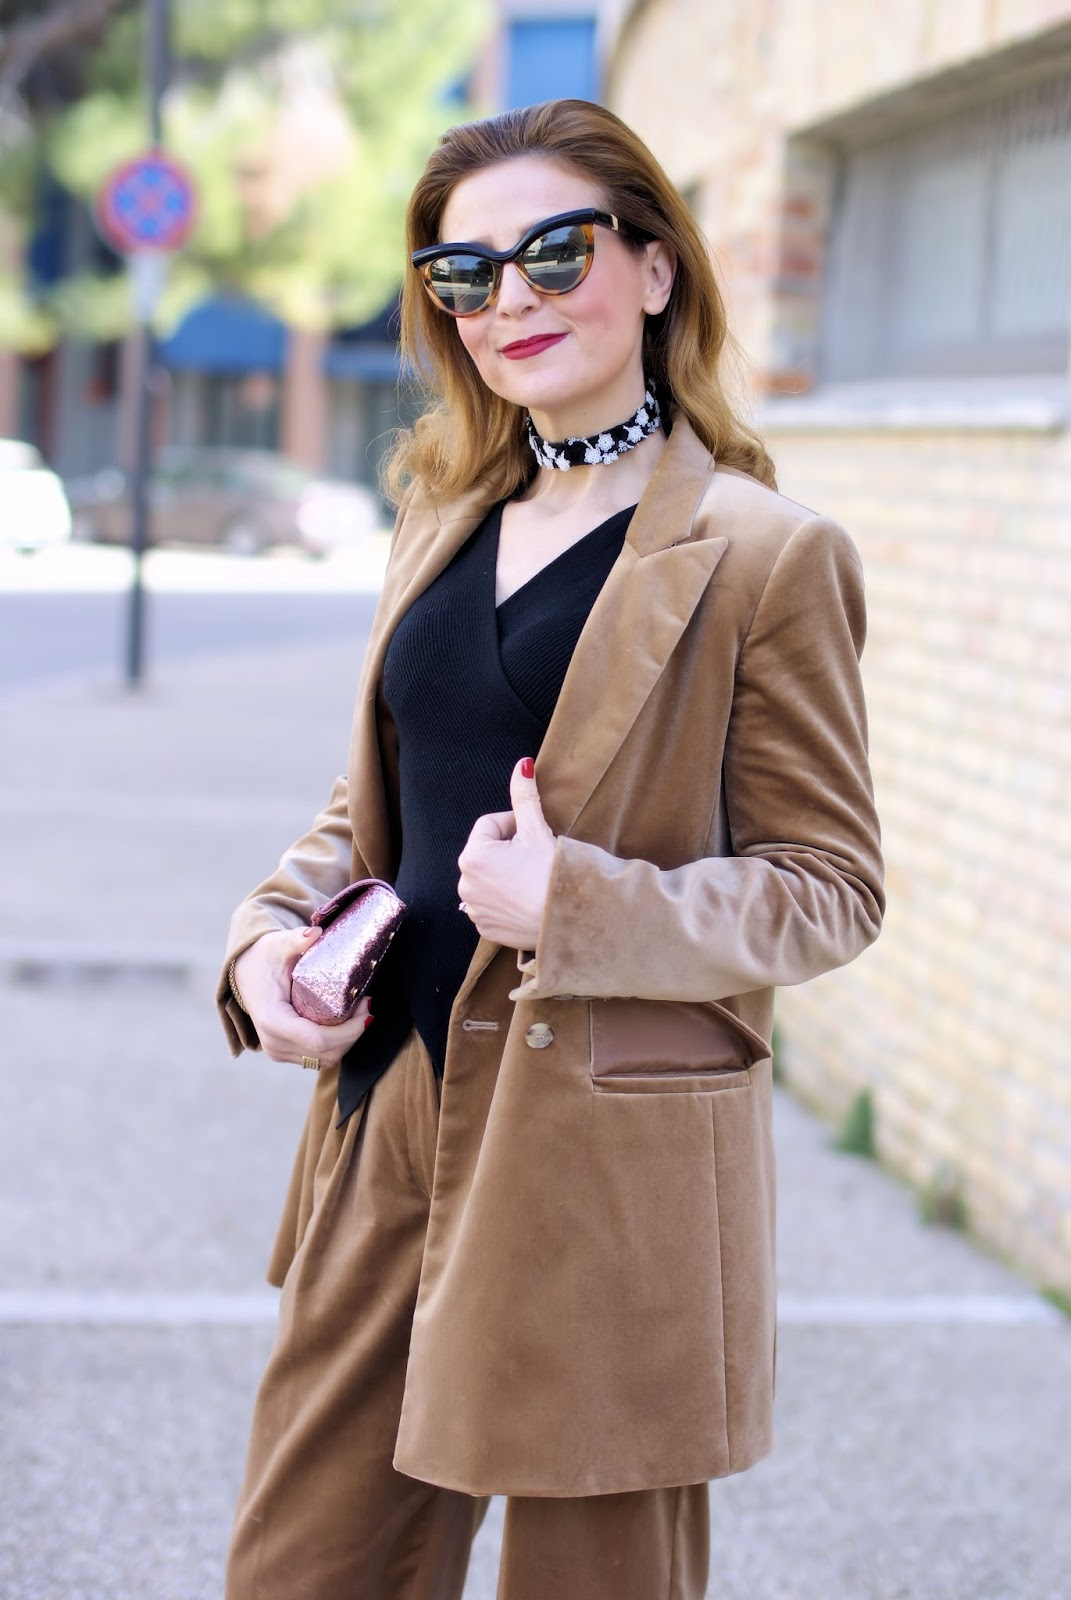 Max Mara velvet suit and RYinNYC lace choker on Fashion and Cookies fashion blog, fashion blogger style